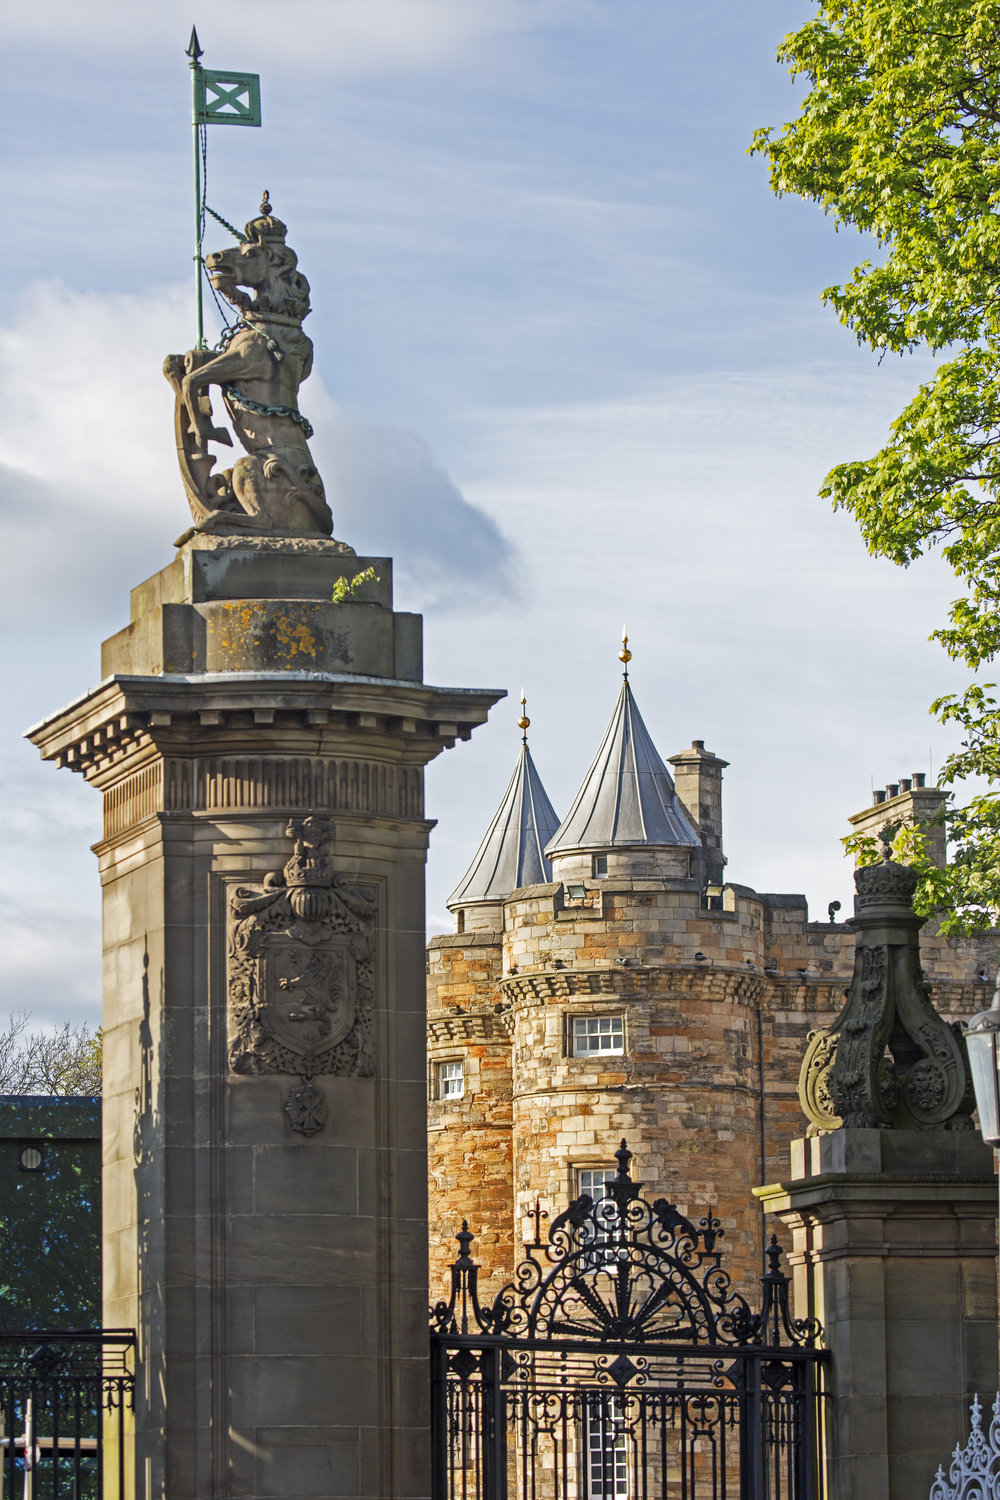 The Palace of Holyroodhouse, the official residence of the Queen when she visits Scotland.